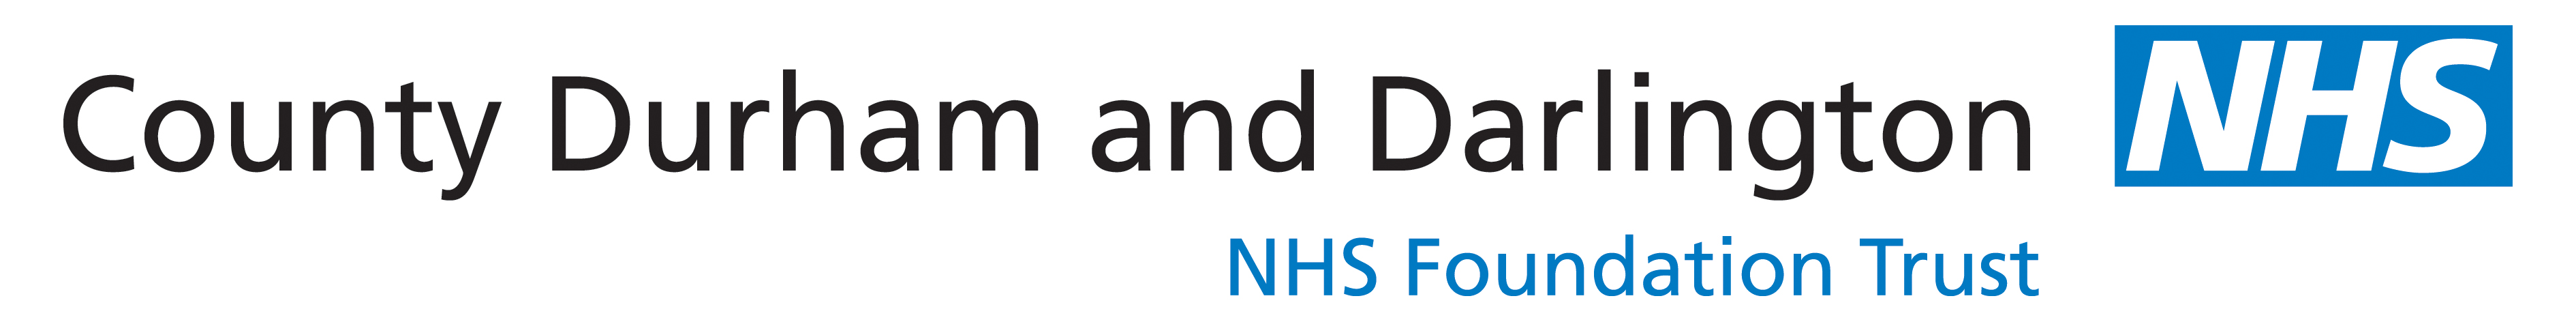 Inhealthcare customer - County Durham and Darlington